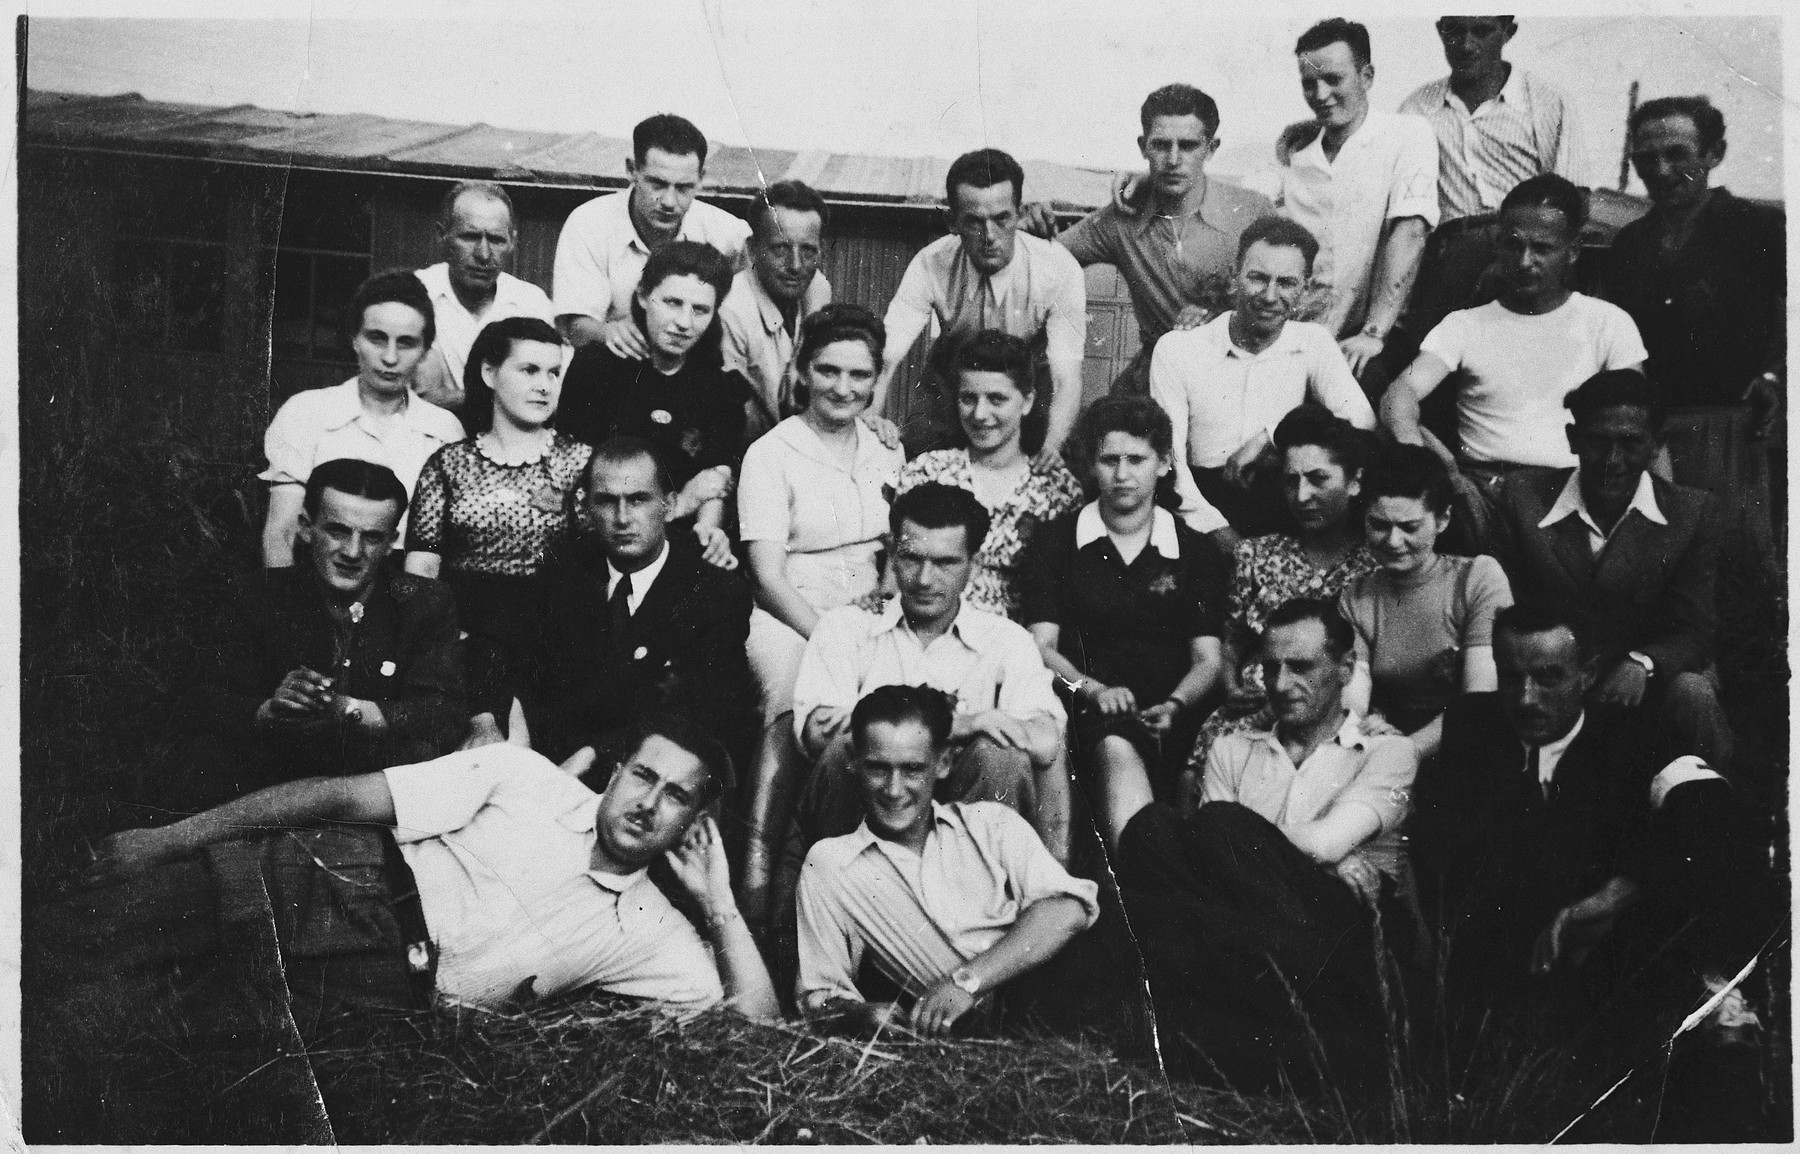 Prisoners in the Markstadt labor camp.  Among those pictured is Dr. Wolf Laitner, seated center, in the white shirt, directly behind the man leaning on his elbow.   Also pictured is Ruth Lieber (later Rydelnik) (second row from the top, third from the left).